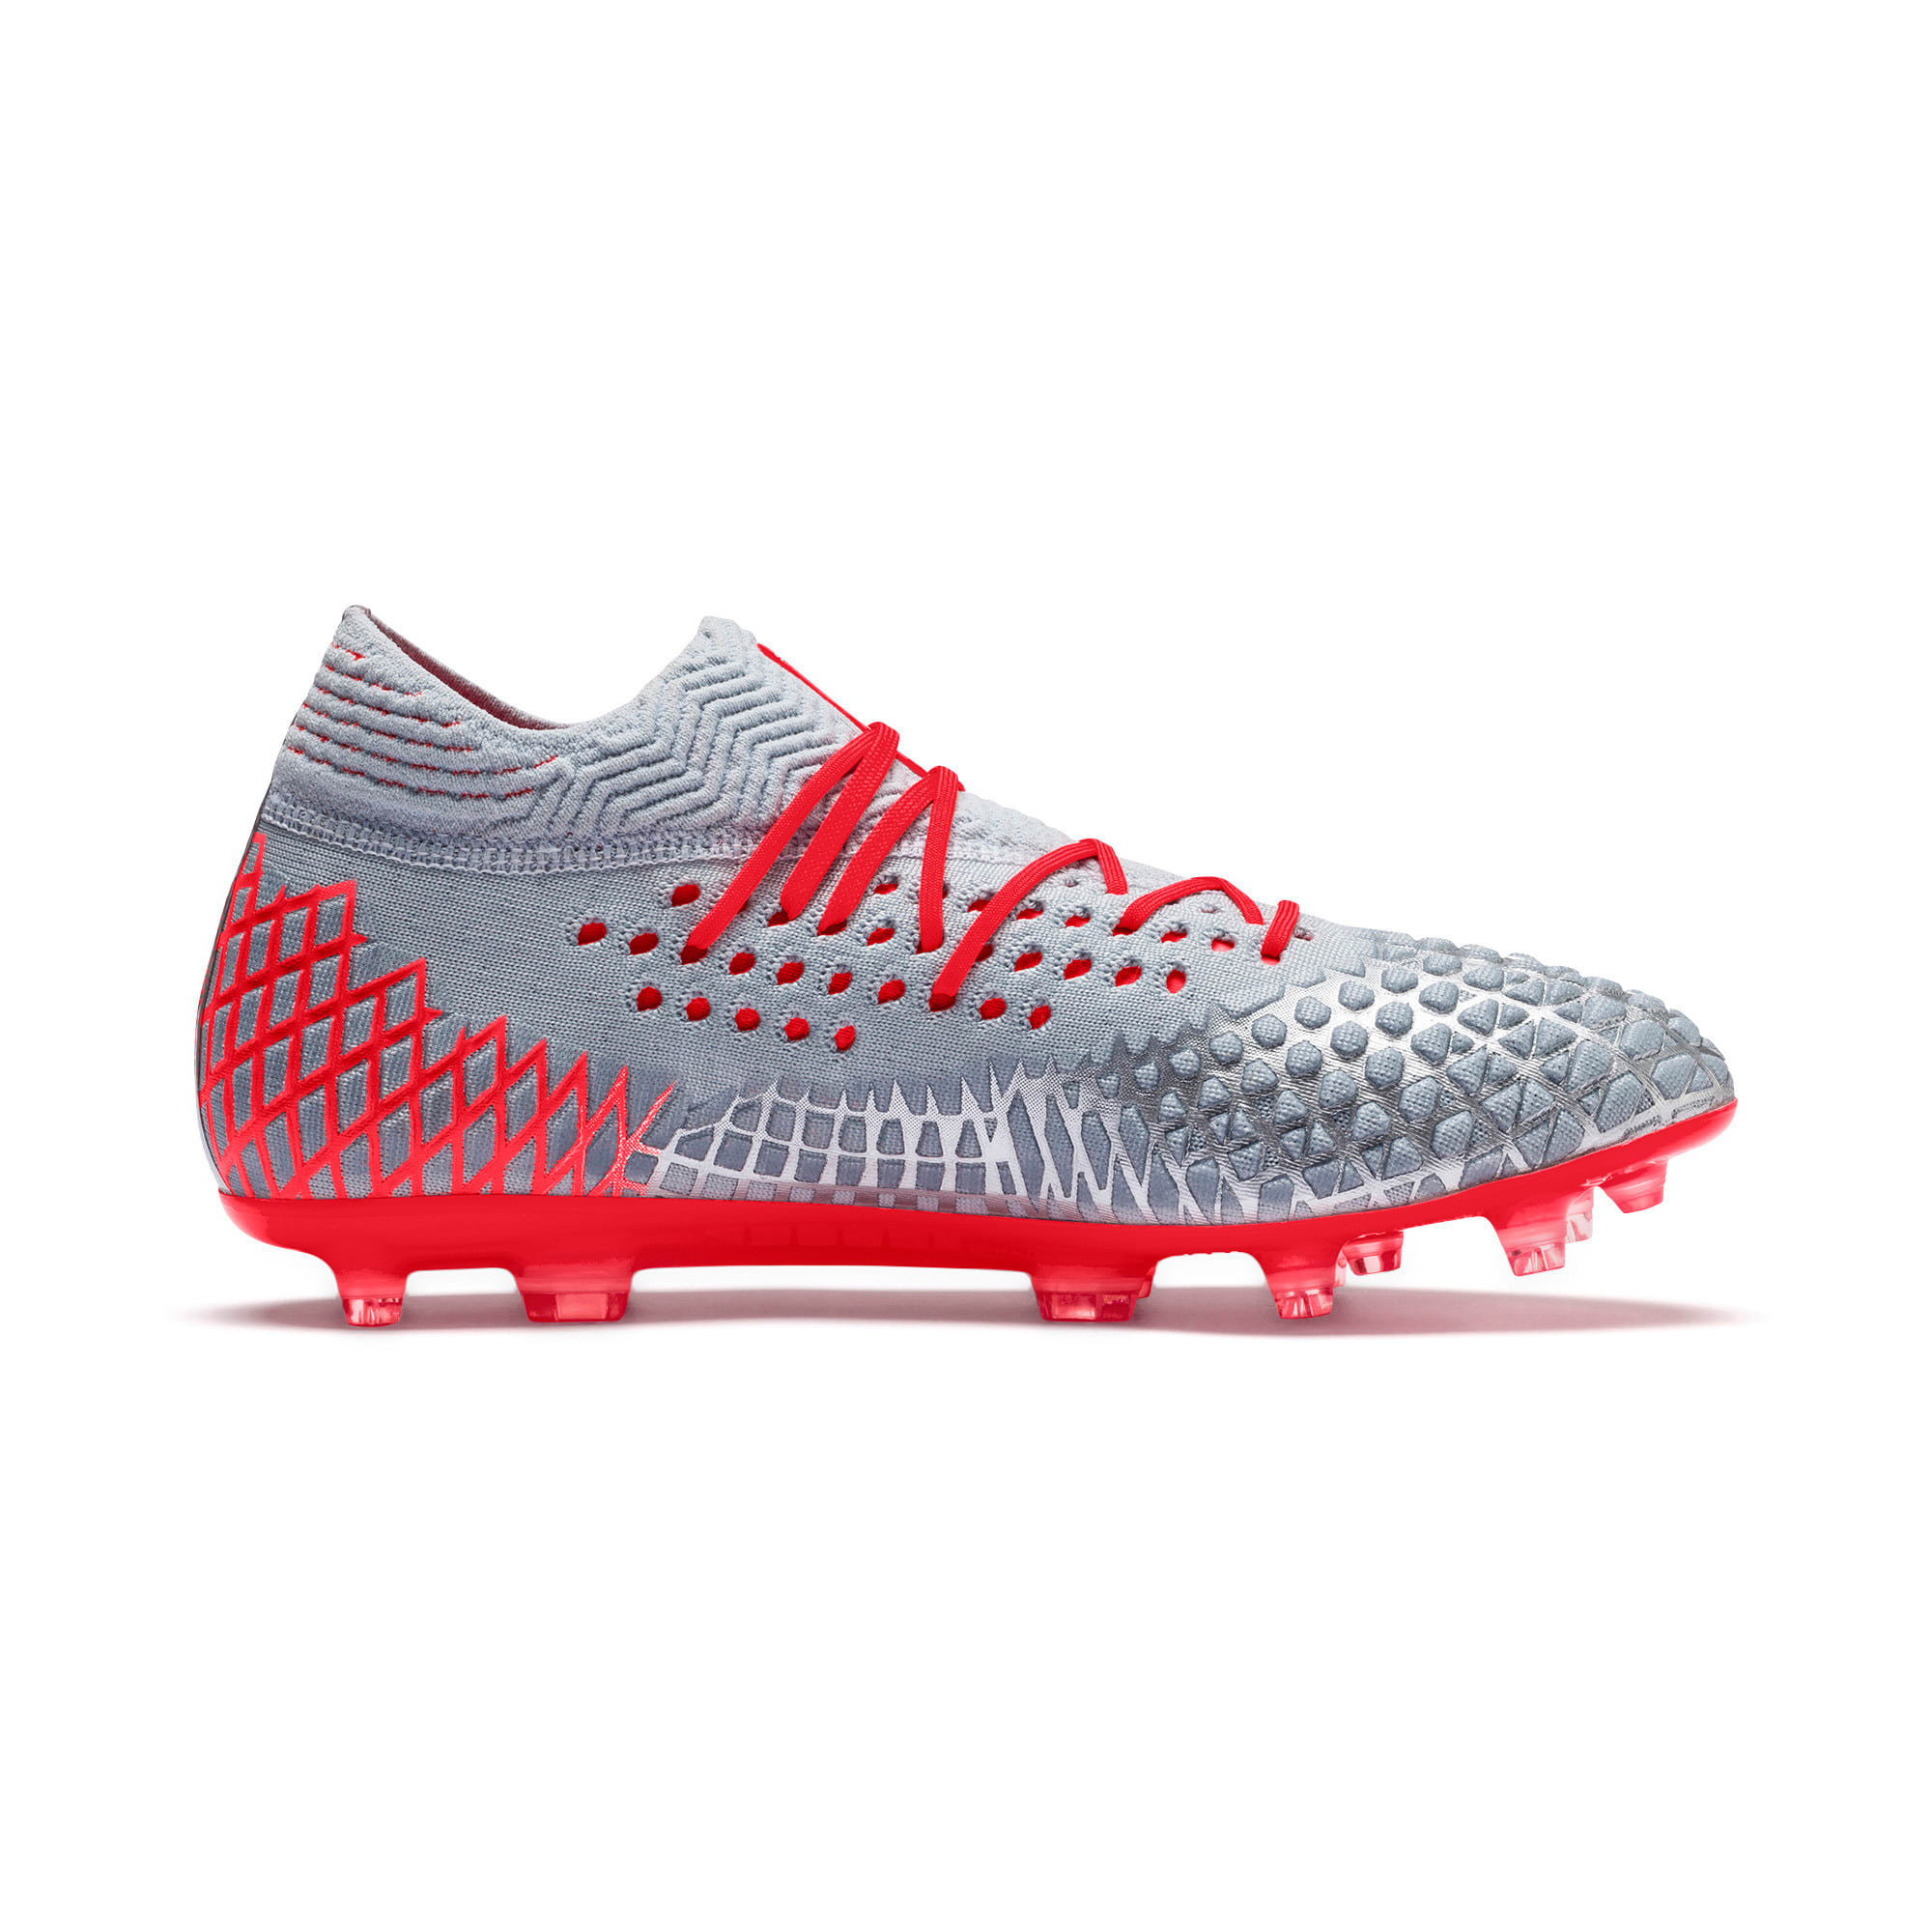 Thumbnail 6 of FUTURE 4.1 NETFIT FG/AG Herren Fußballschuhe, Blue-Nrgy Red-High Risk Red, medium